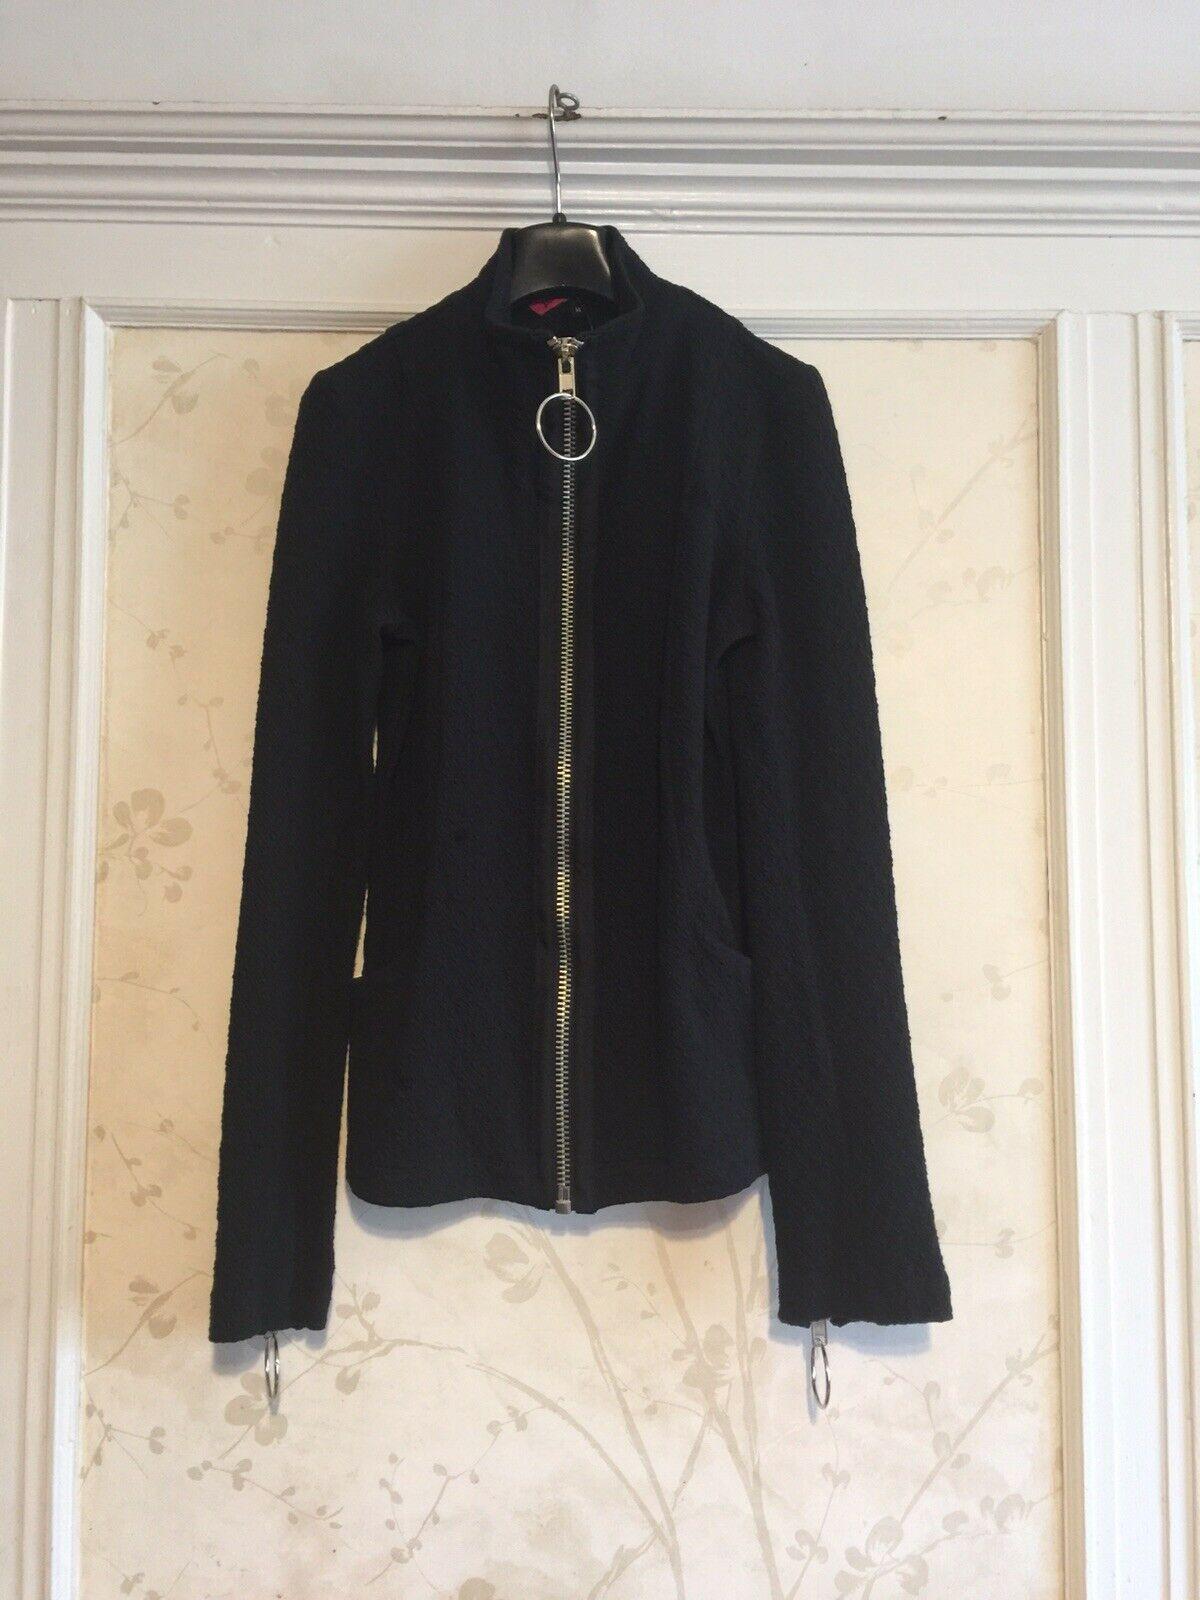 NWT Betsey Johnson Black Jacket M Made In U.S.A.